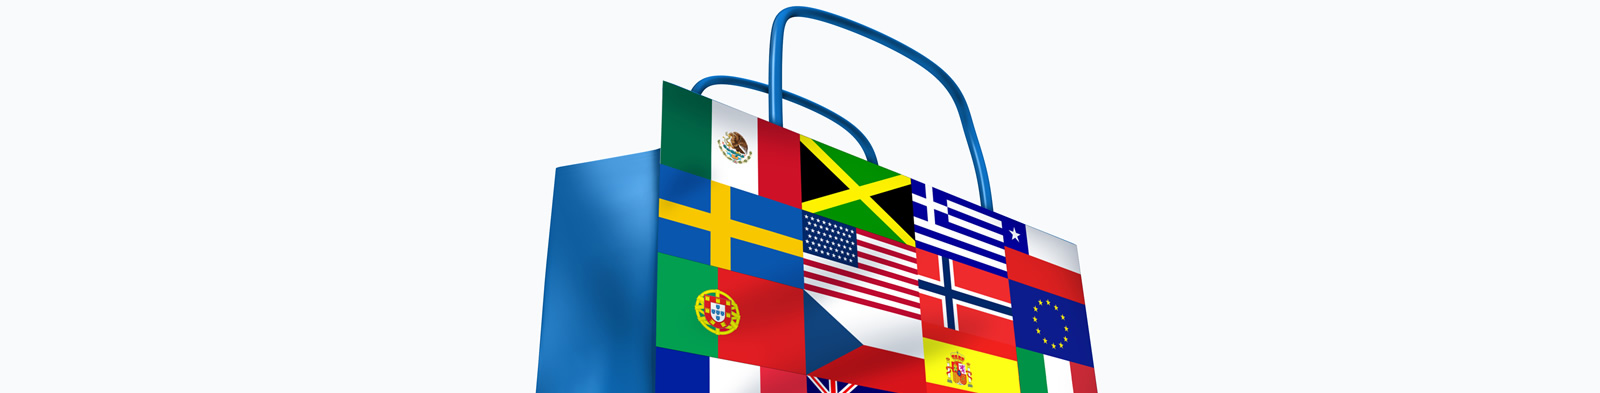 Shopping bag adorned with flags from around the world